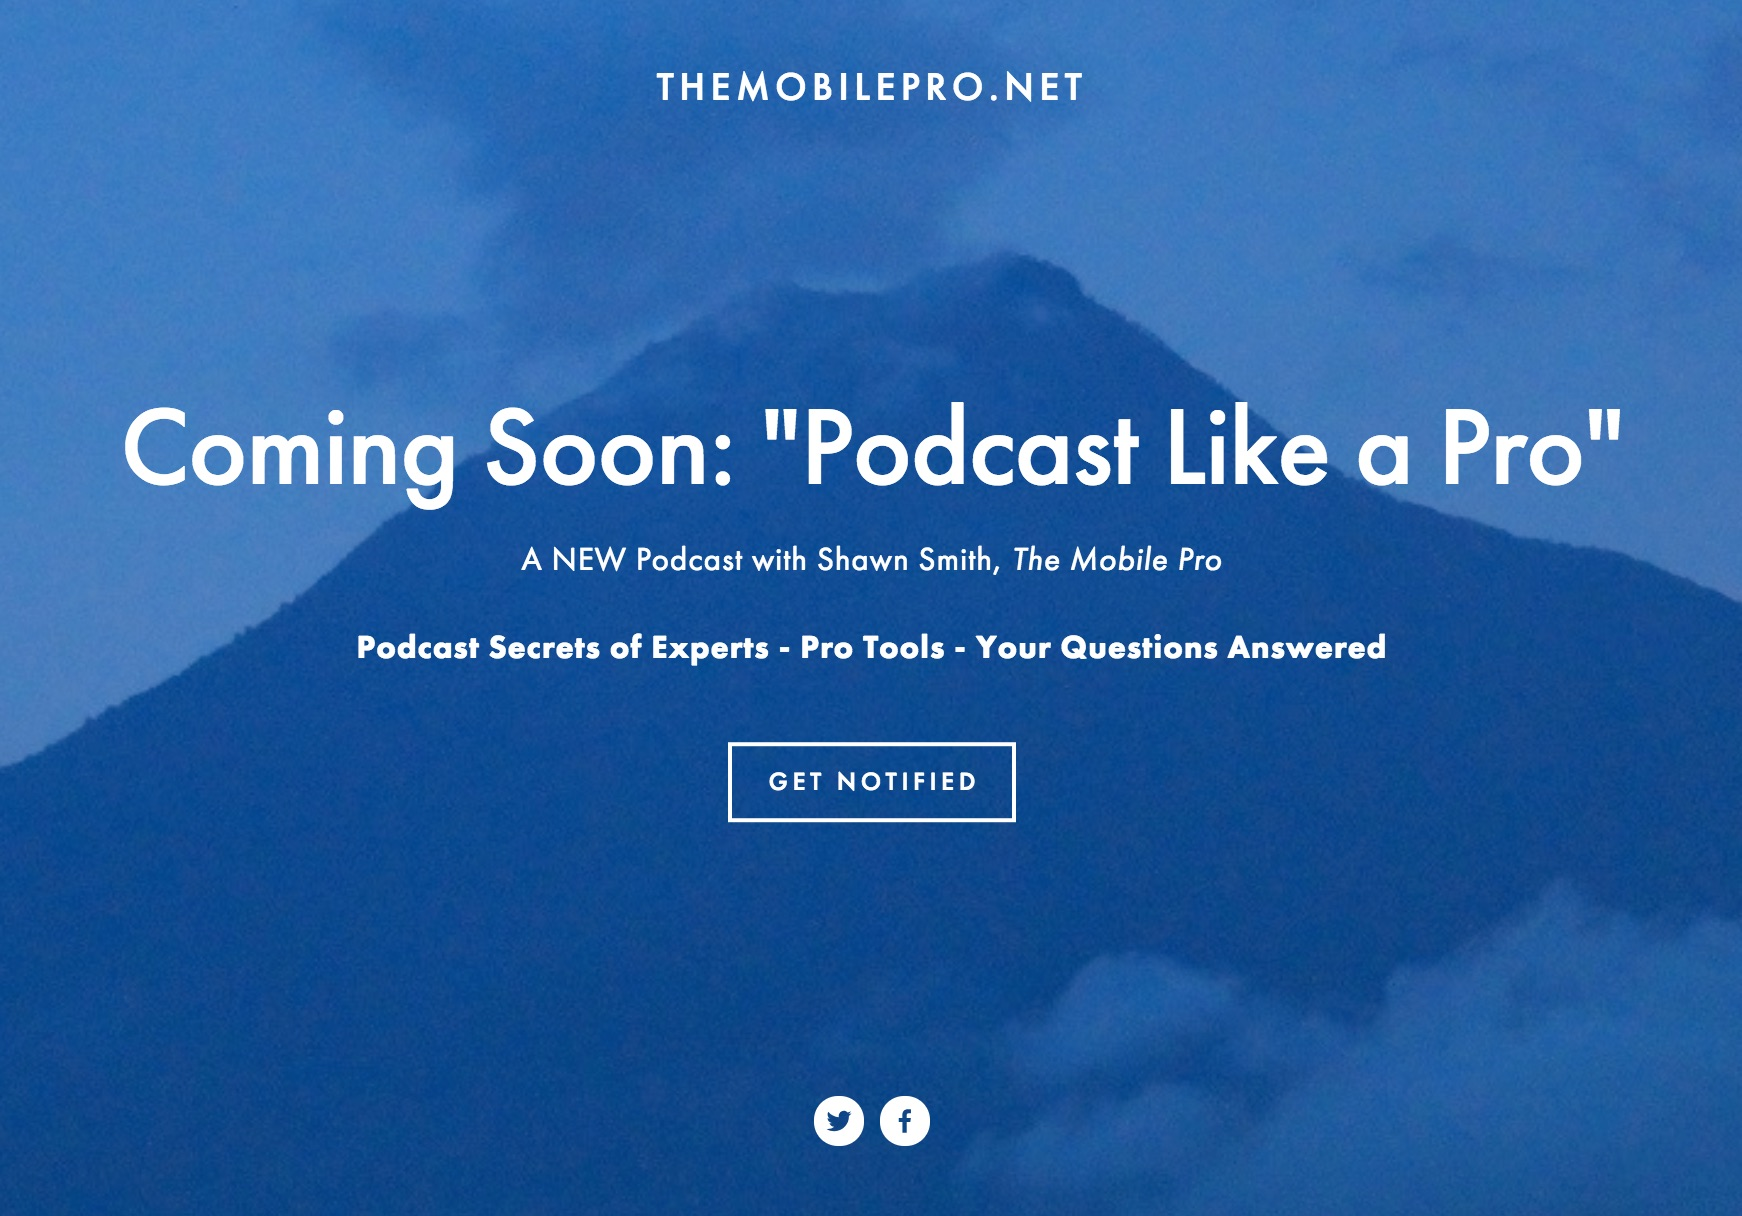 The_Mobile_Pro_Podcast_-_SignUp_—_The_Mobile_Pro.jpg